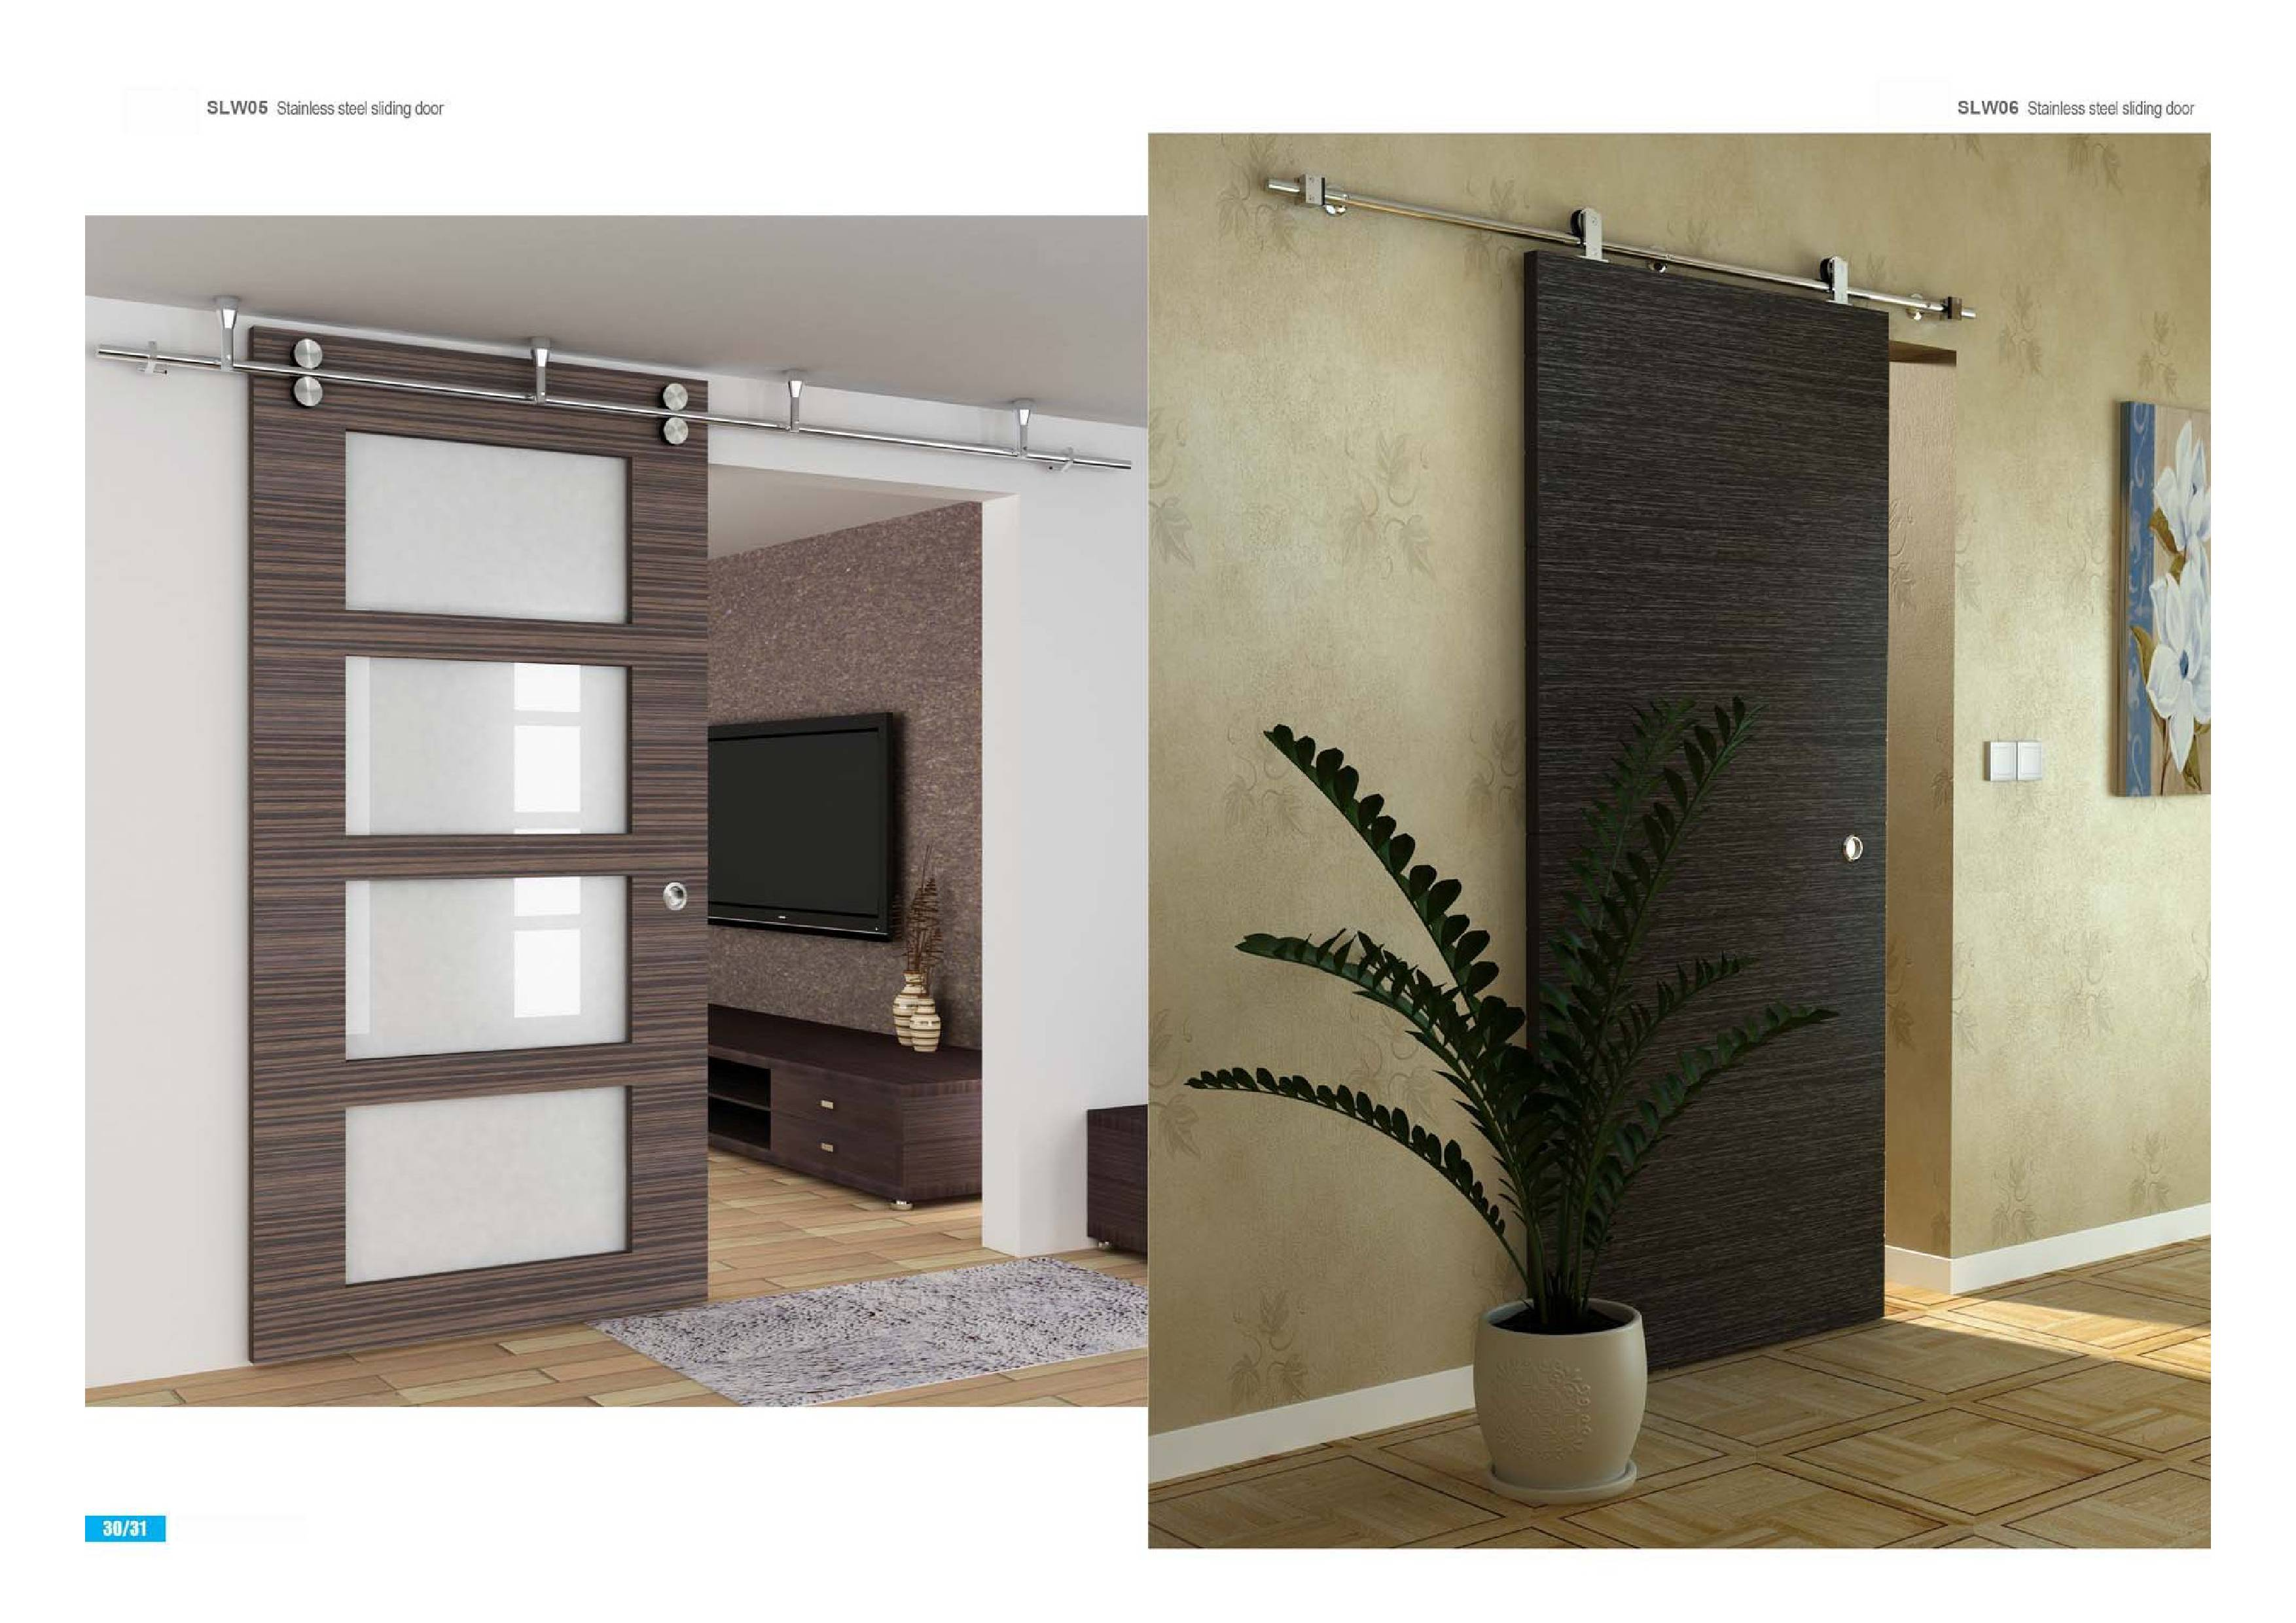 Sliding Barn Doors - ADR signature